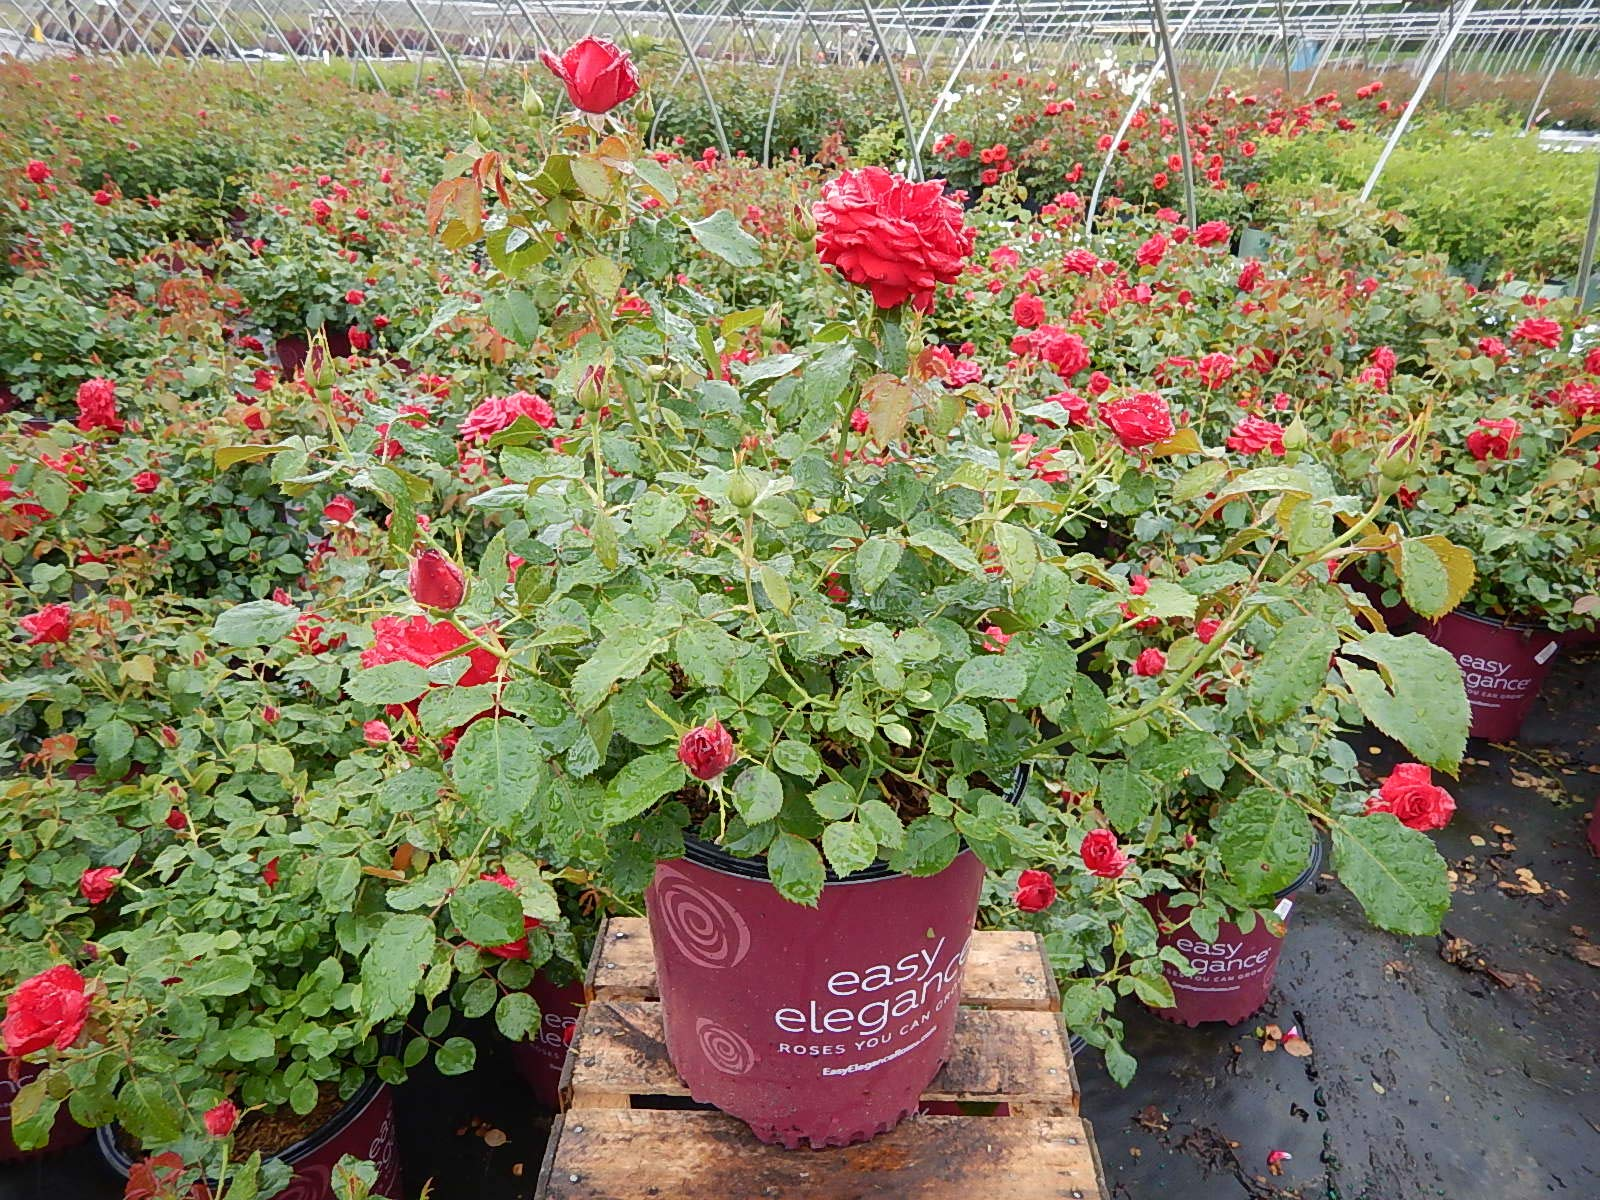 Easy Elegance Roses - Rosa Super Hero (Rose) Rose, red flowers, #2 - Size Container by Green Promise Farms (Image #5)